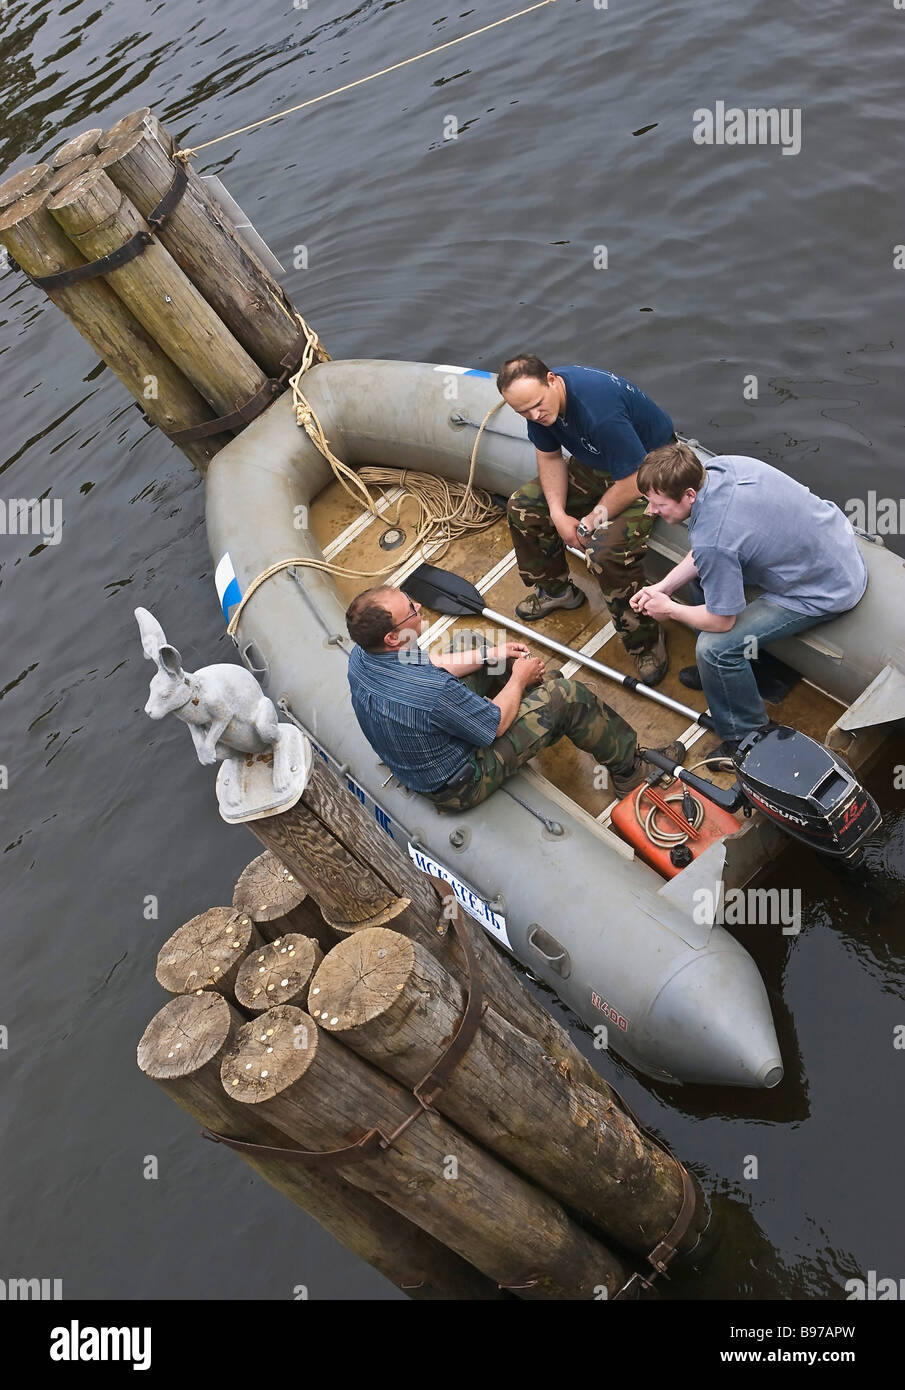 The search for the exclusive HELLMUTH watch worth 200 000 which fell in water near Ioanovsky Bridge of the St Peter - Stock Image